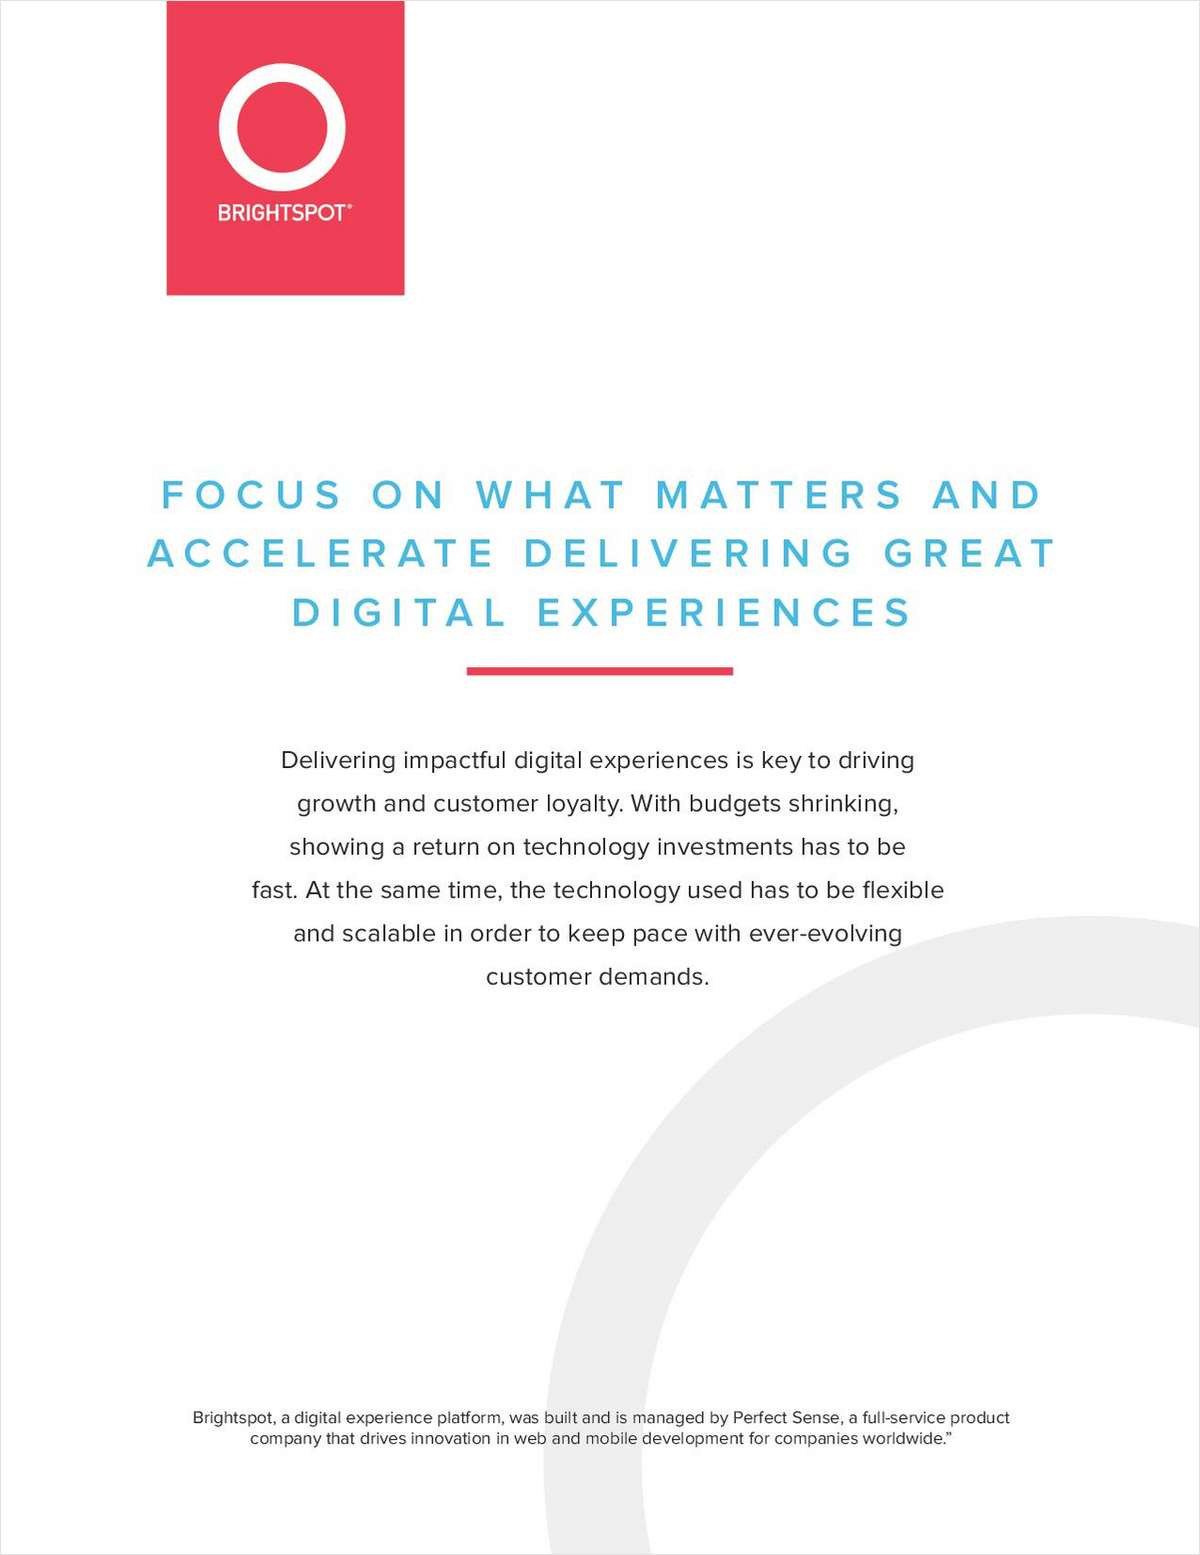 Focus on What Matters and Accelerate Delivering Great Digital Experiences